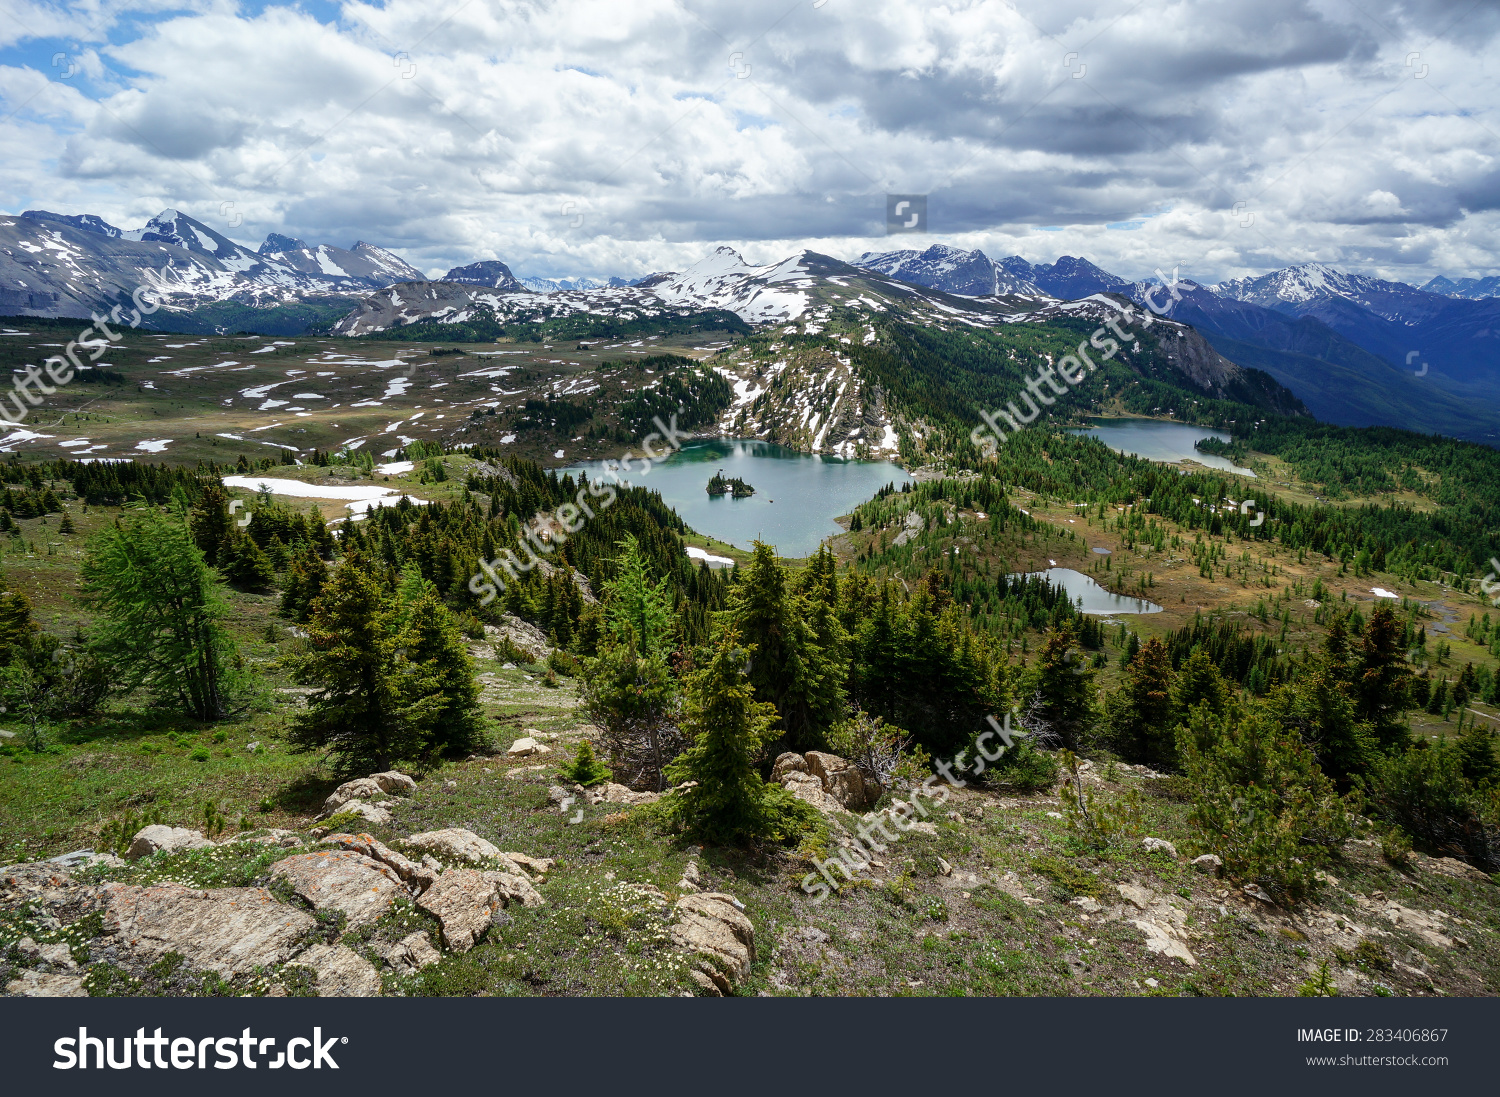 Mount Assiniboine clipart #3, Download drawings